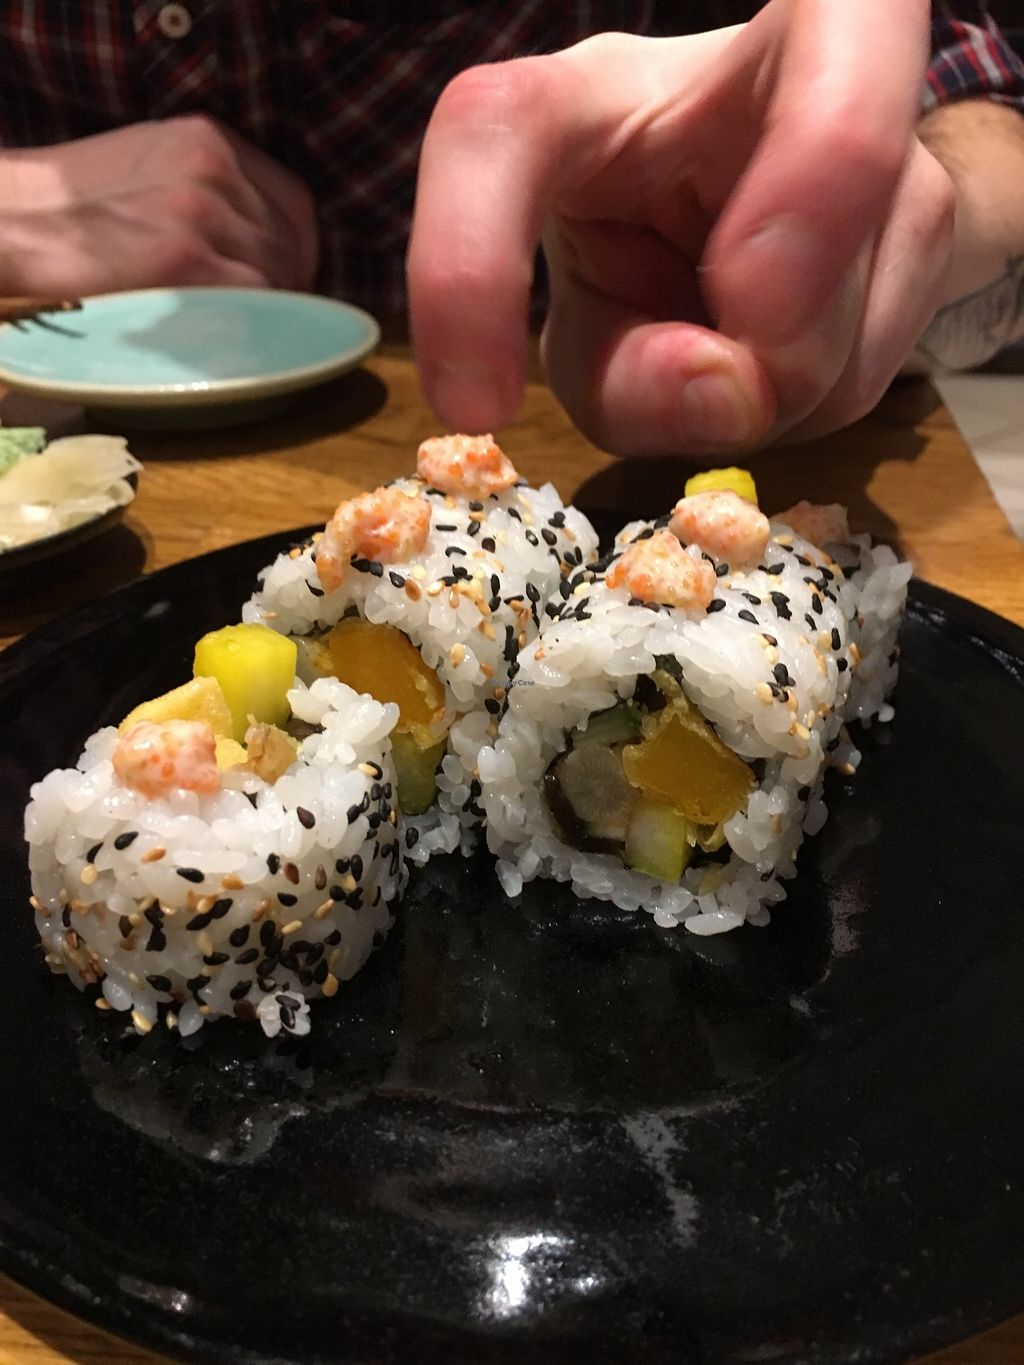 """Photo of Youmiko Vegan Sushi  by <a href=""""/members/profile/Kwacha"""">Kwacha</a> <br/>tasting menu <br/> January 17, 2018  - <a href='/contact/abuse/image/68693/347636'>Report</a>"""